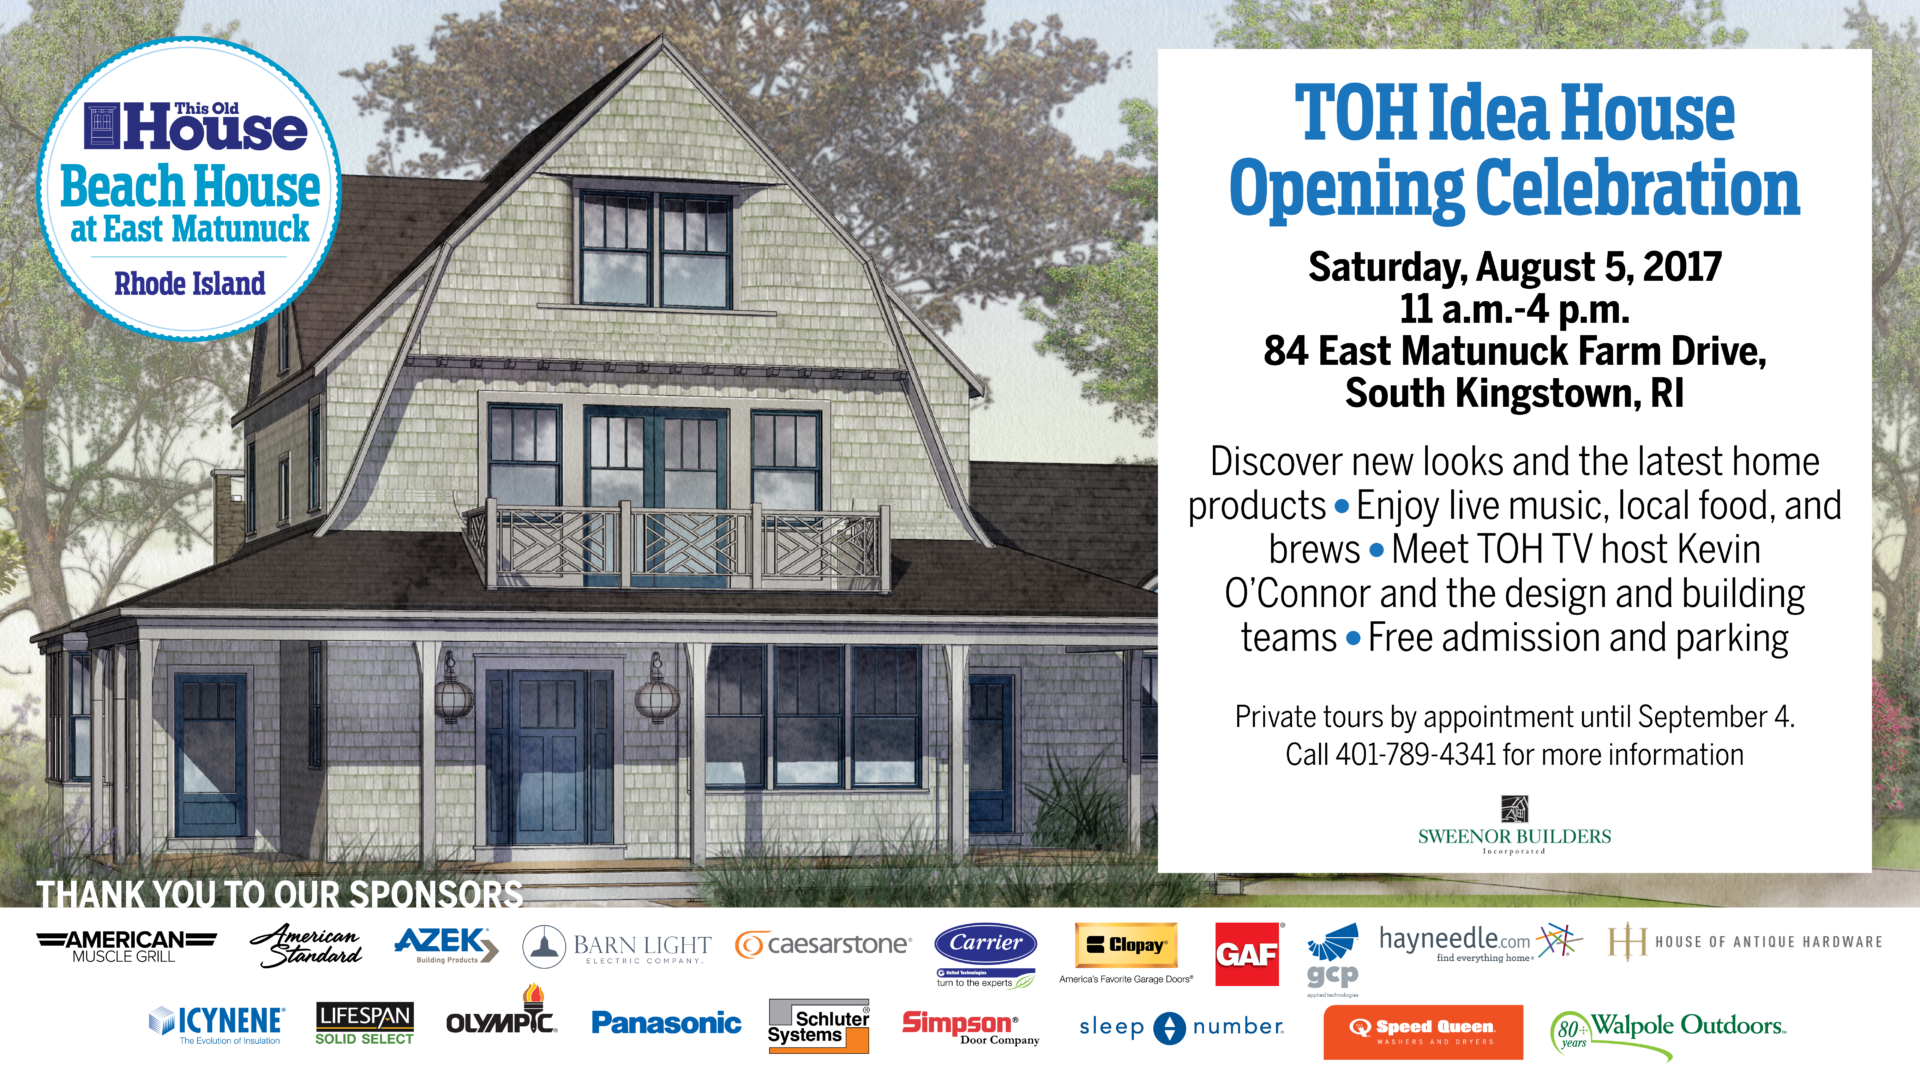 THIS OLD HOUSE® 2017 Idea House Grand Opening Celebration